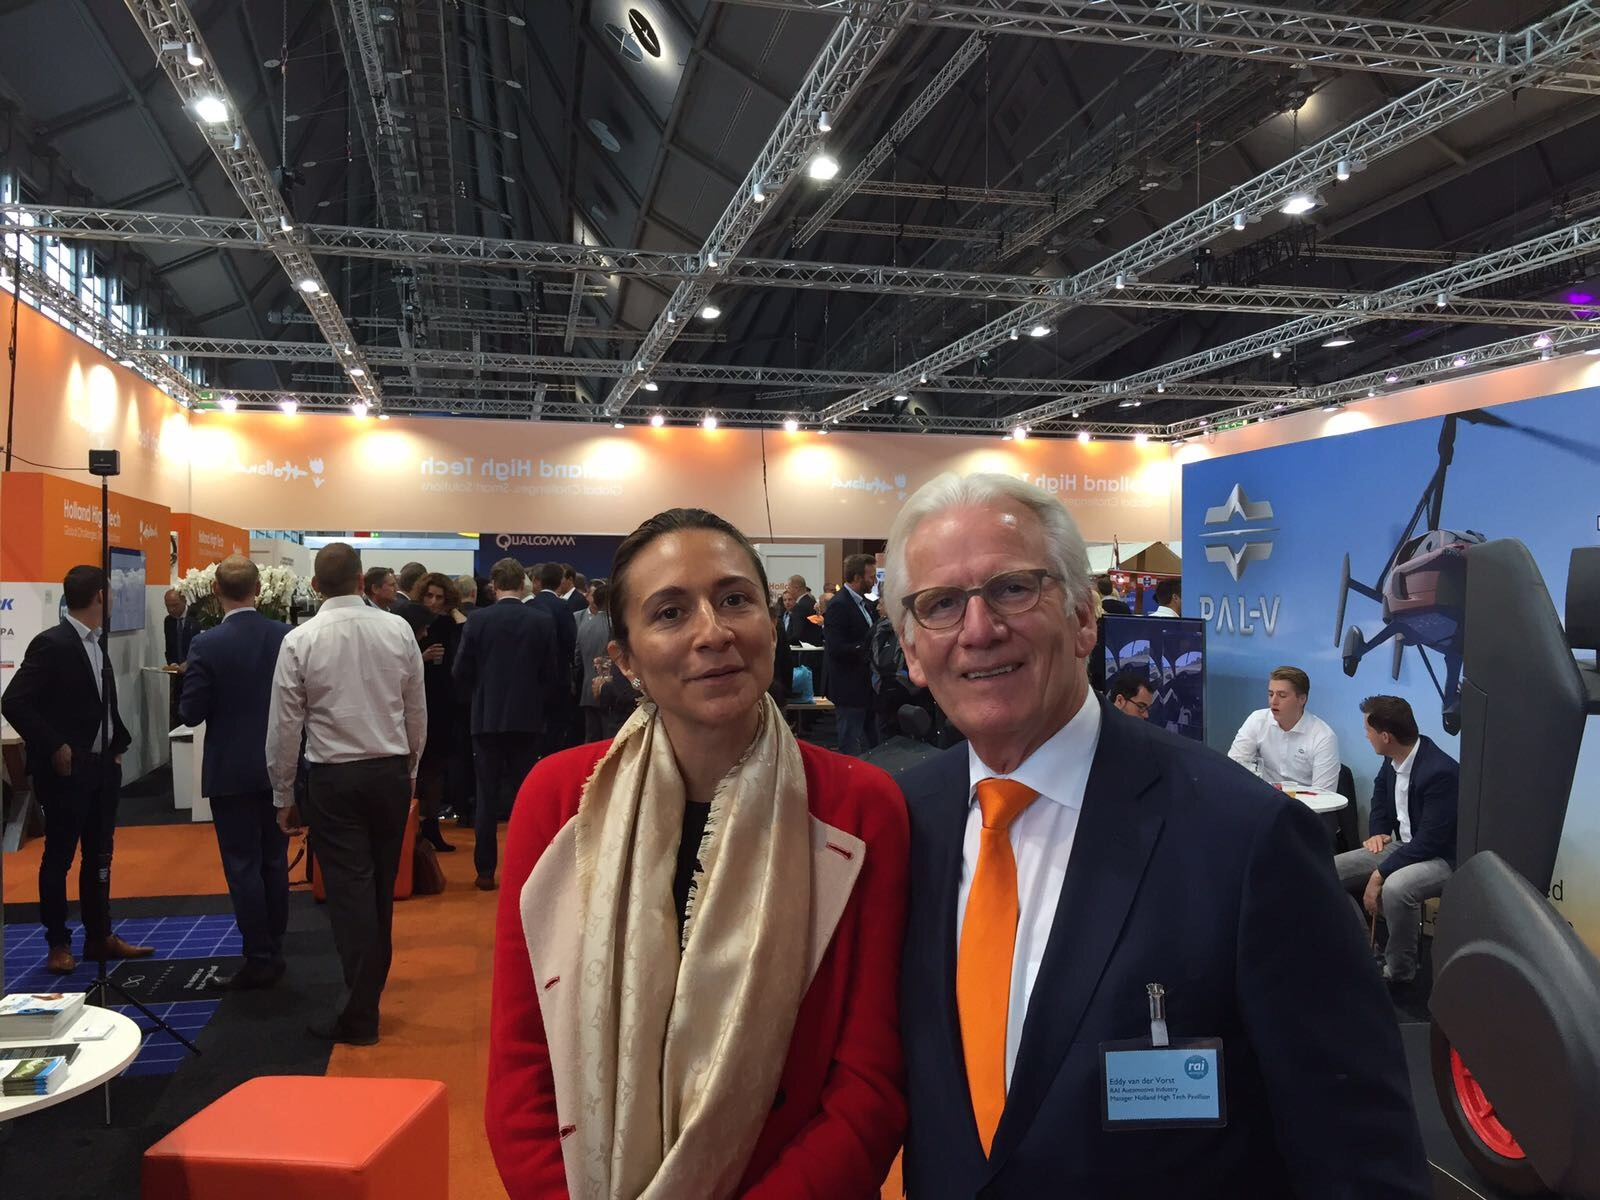 LIASE Group Managing Director Asia, Vanessa Moriel and Eddy van der Vorst at the Holland High-Tech Pavilion.